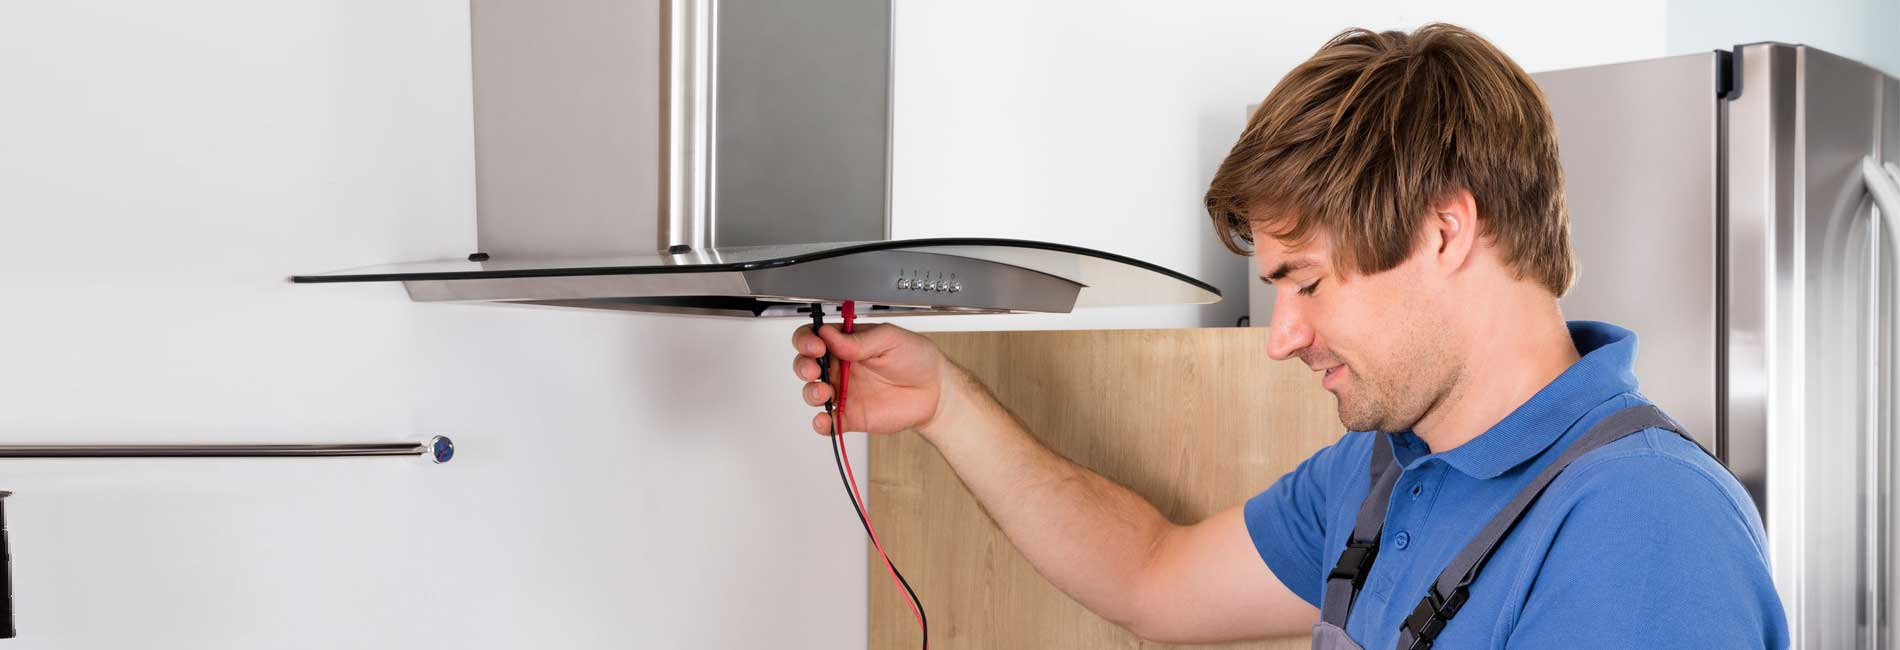 Hindware Chimney Repair in irumbuliyur